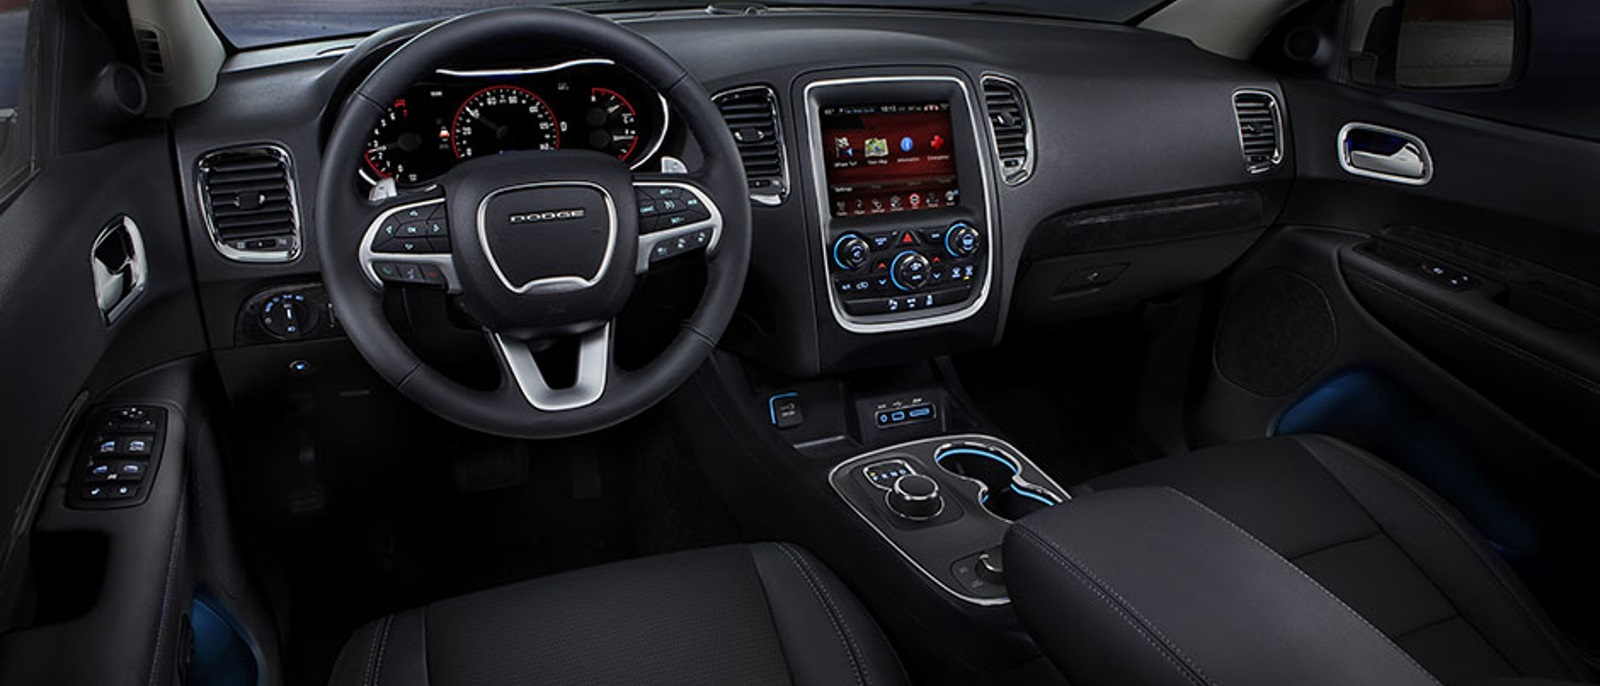 luxury leather interior interiortour your new quality of available nappa dodge high the sound engages durango from system seats en trimmed all to senses features